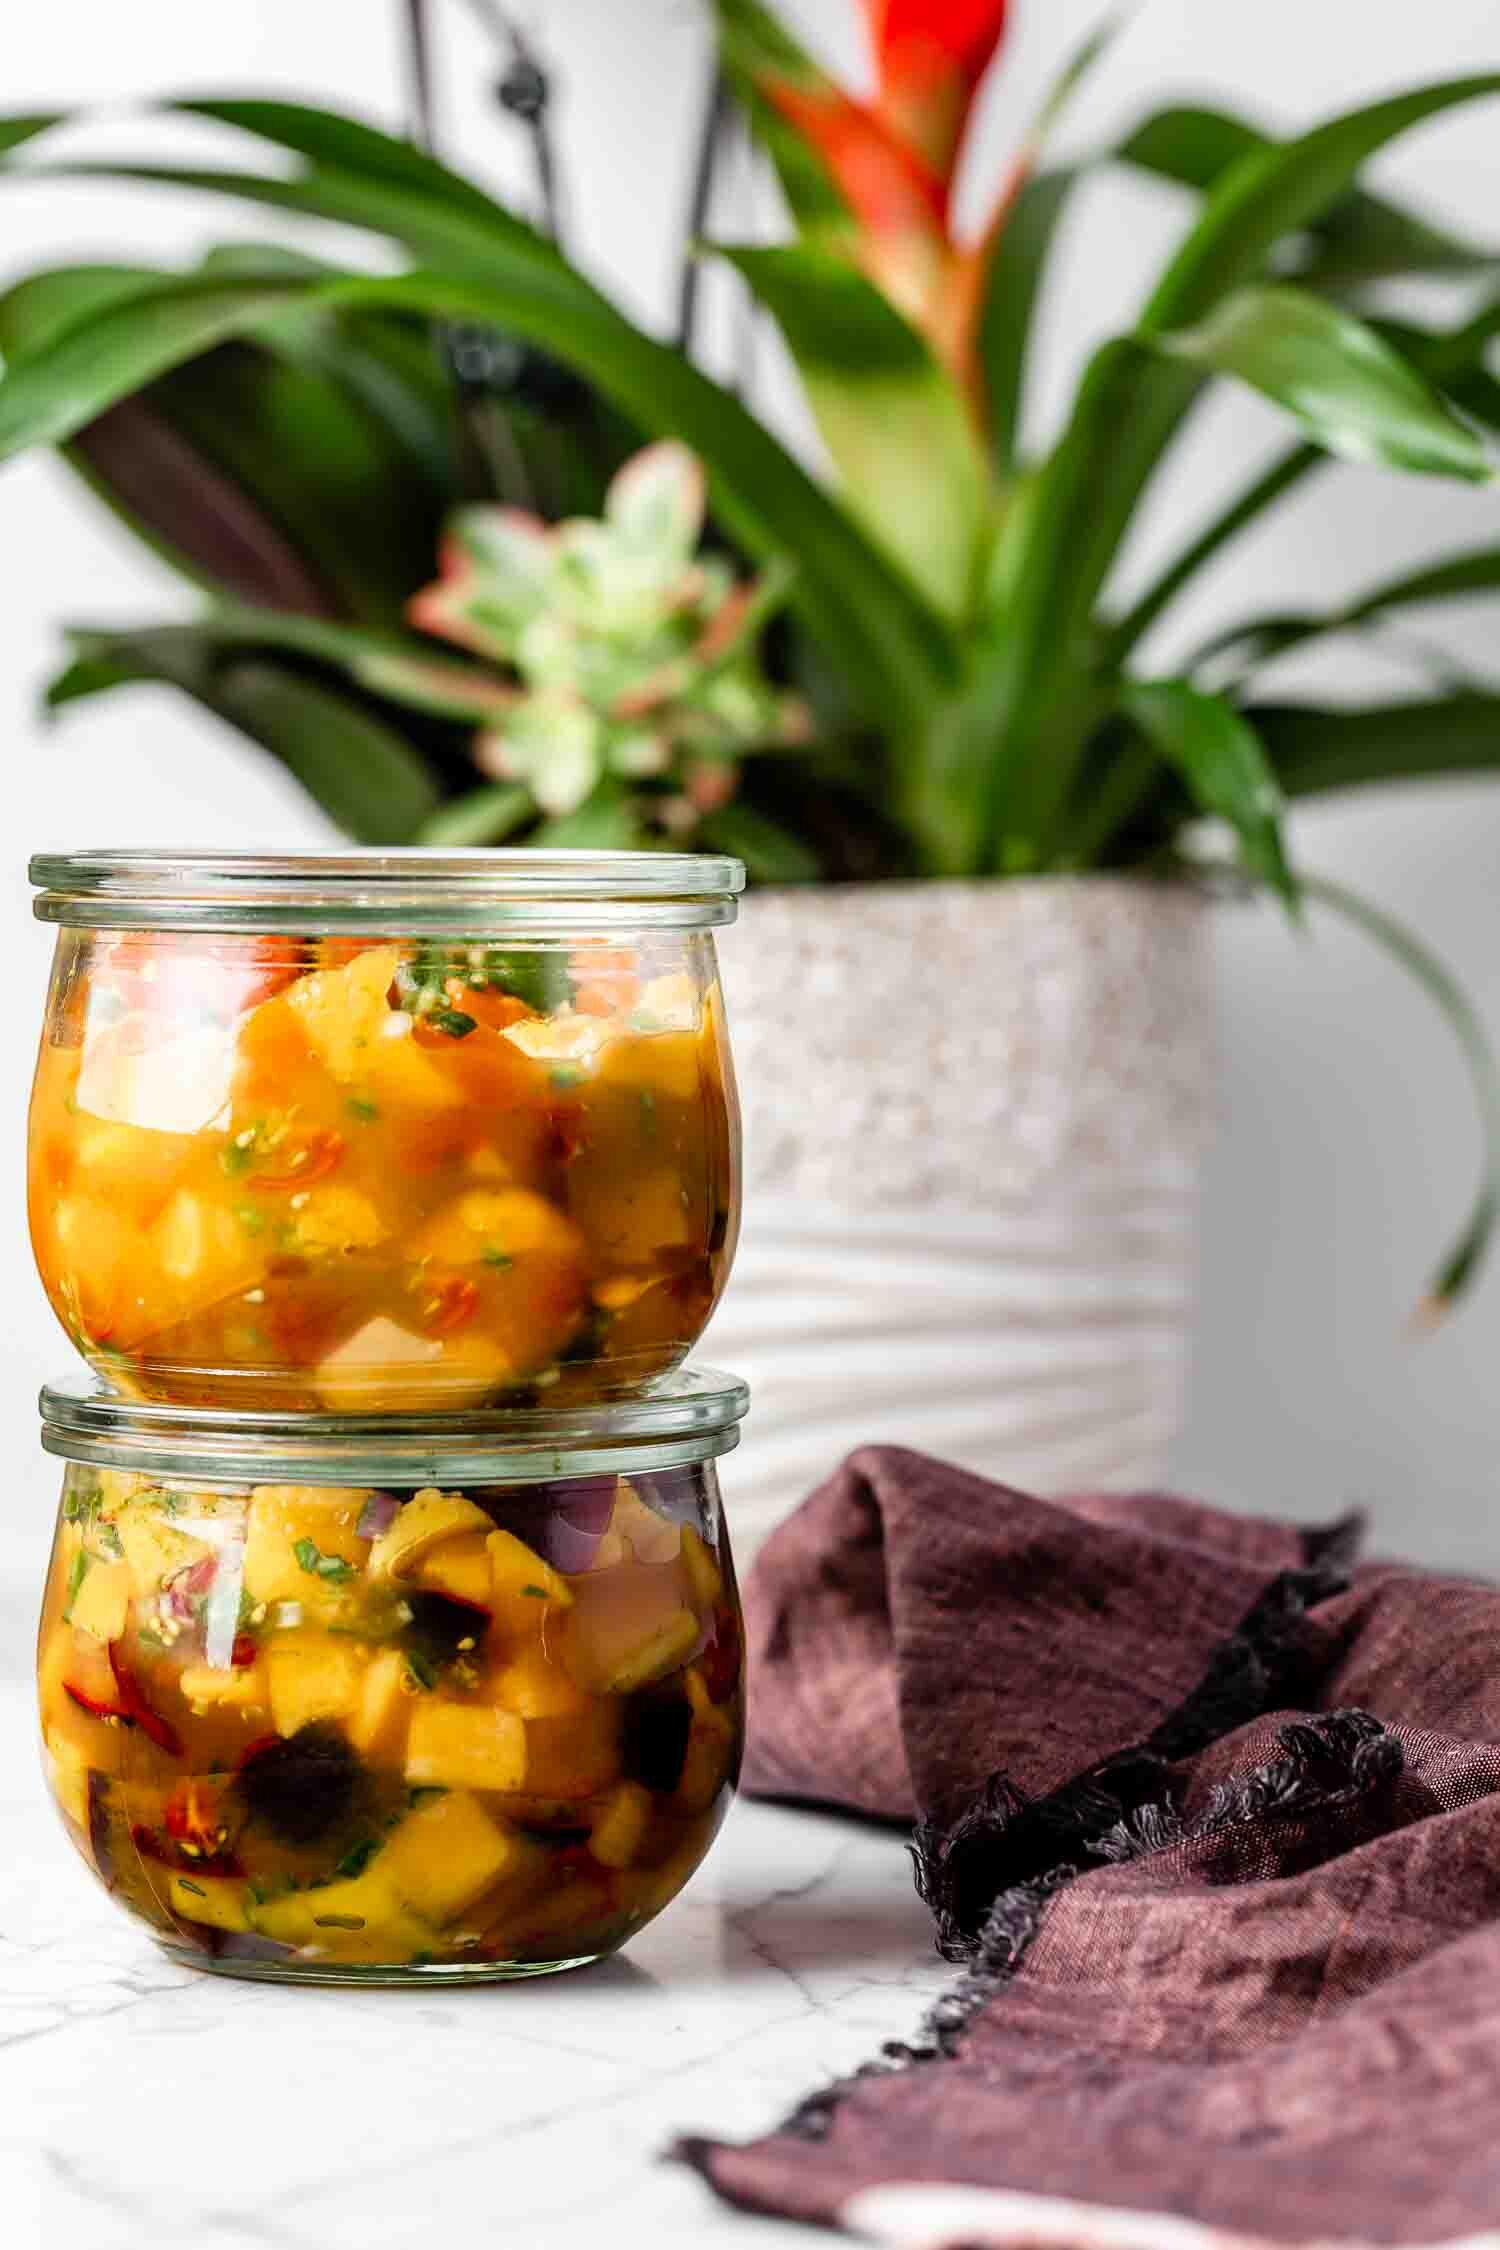 5-ingredient Mango Salsa that is fresh, vibrant, and full of flavor - plus, it's ready in just a few minutes! Sure to disappear quickly, so make a big batch! Recipe by Kari of Beautiful Ingredient. Two jars, each with a different type of cherry tomato.  #mangosalsa #mangorecipe #mangosalsarecipe #vegan #plantbased #salsarecipe #oilfree #glutenfree #sugarfree #easyrecipe #quickandeasyrecipes #quickeasymeals #veganmexicanfood